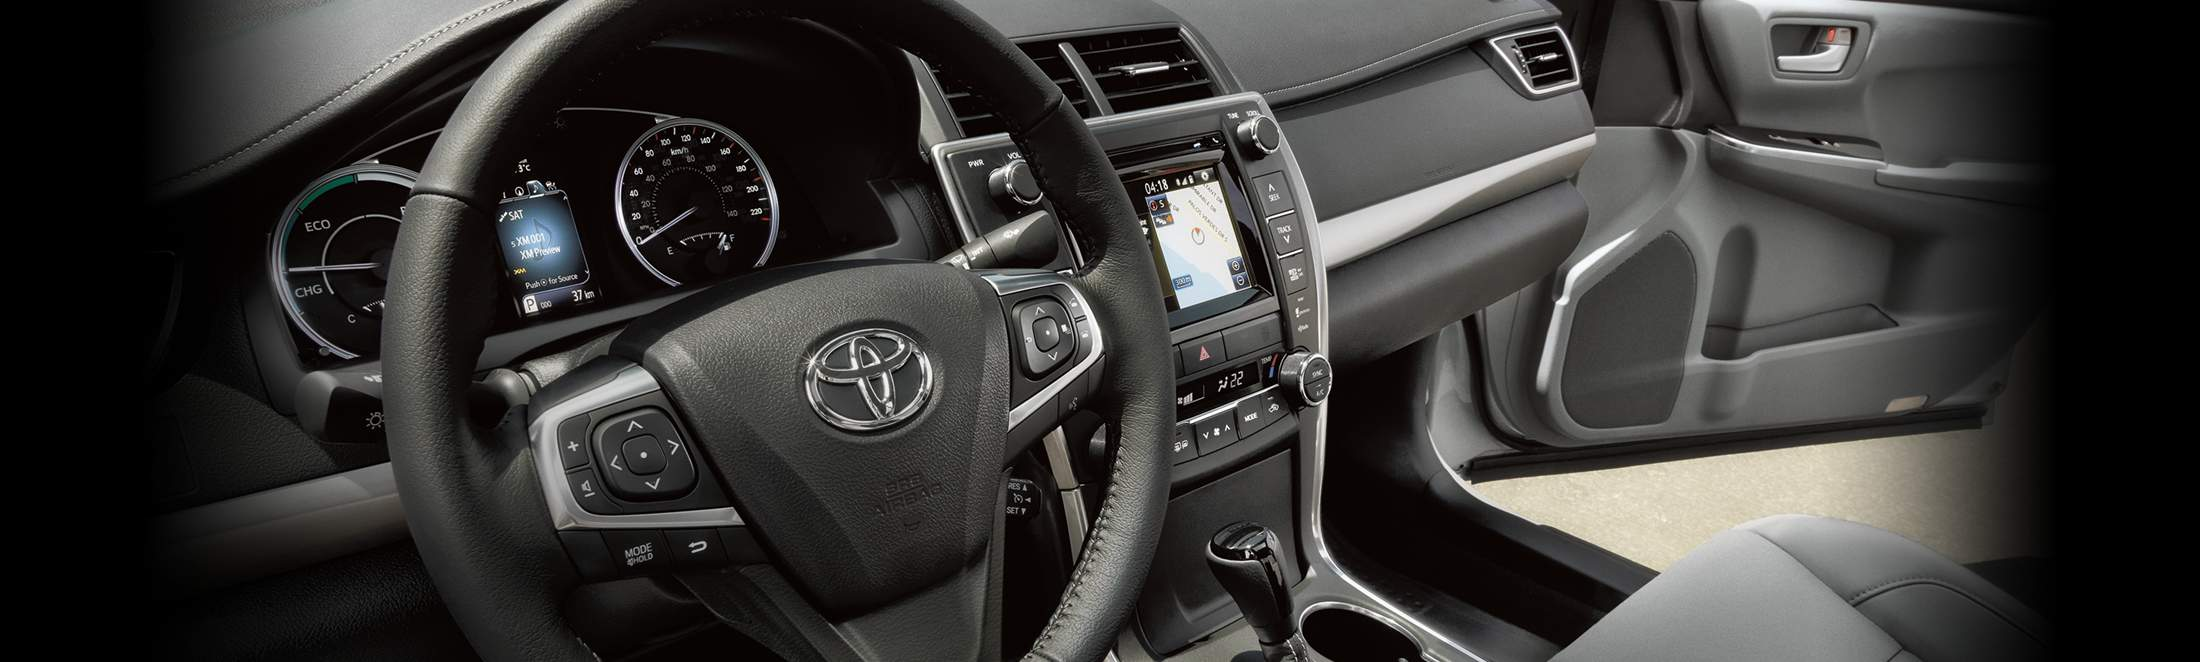 toyota-2017-camry-hybrid-features-leather-interior-l